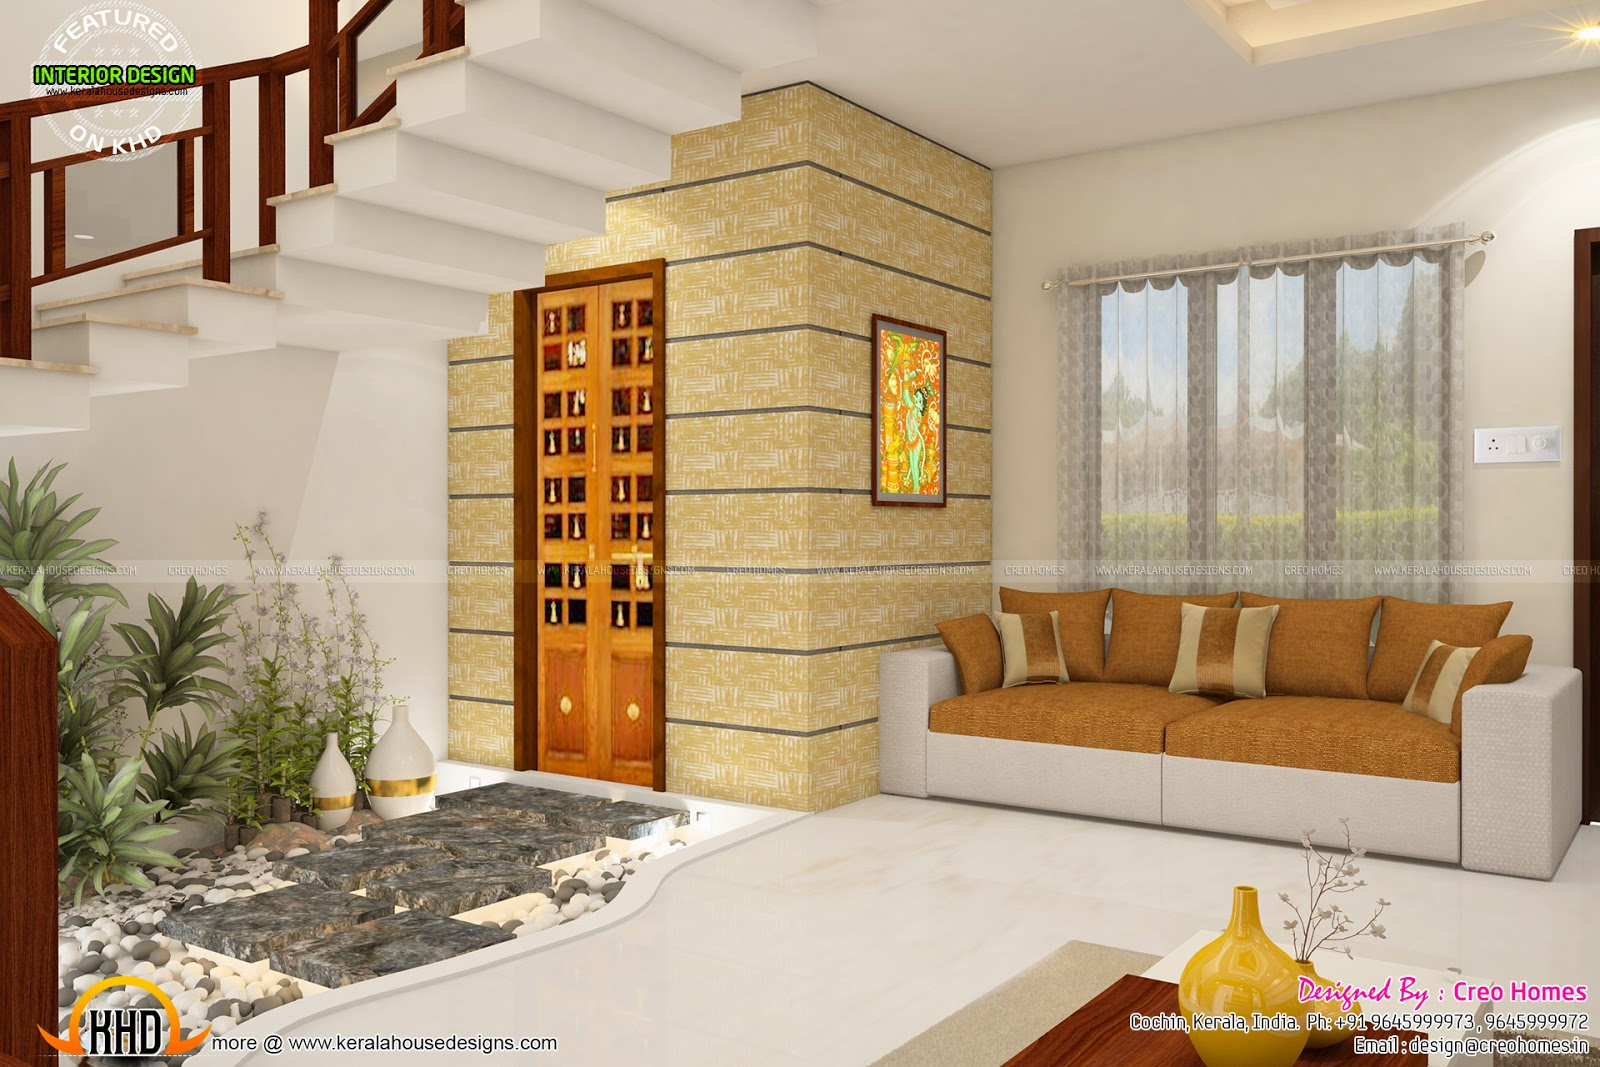 Total home interior solutions by creo homes kerala home for House interior design kerala photos